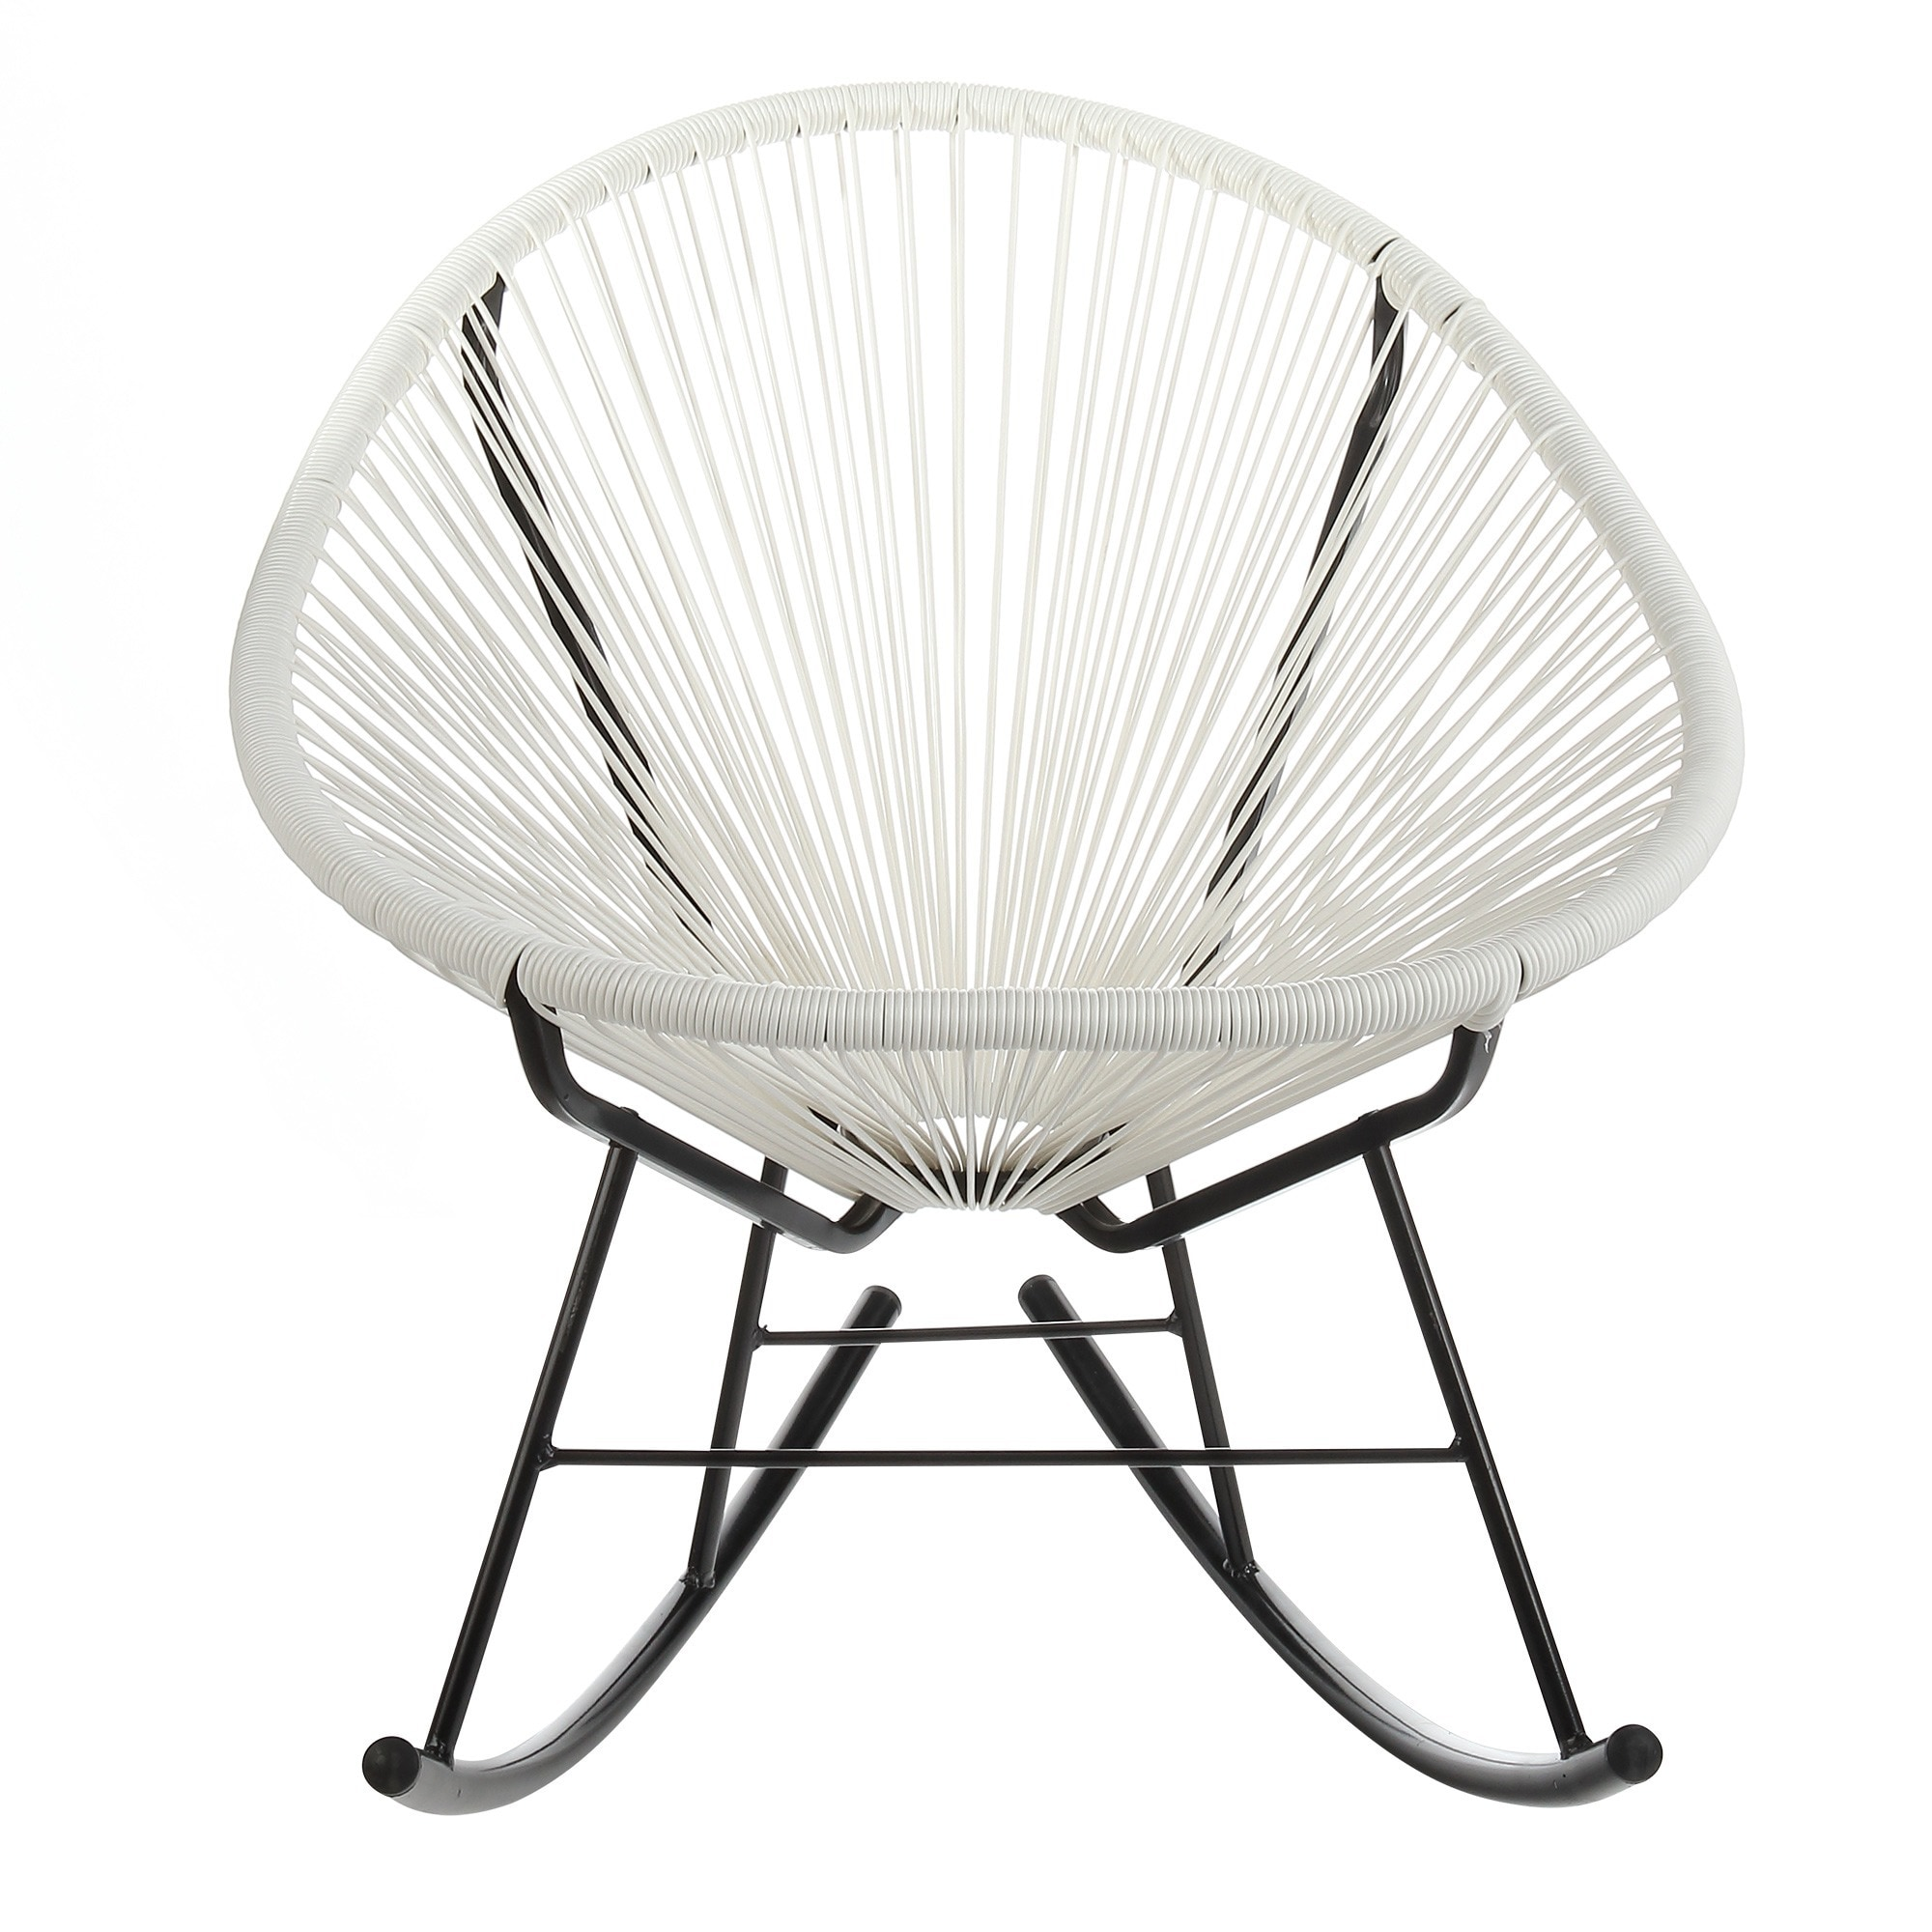 white indoor rocking chair helinox one camp shop acapulco outdoor on sale free shipping today overstock com 10492832